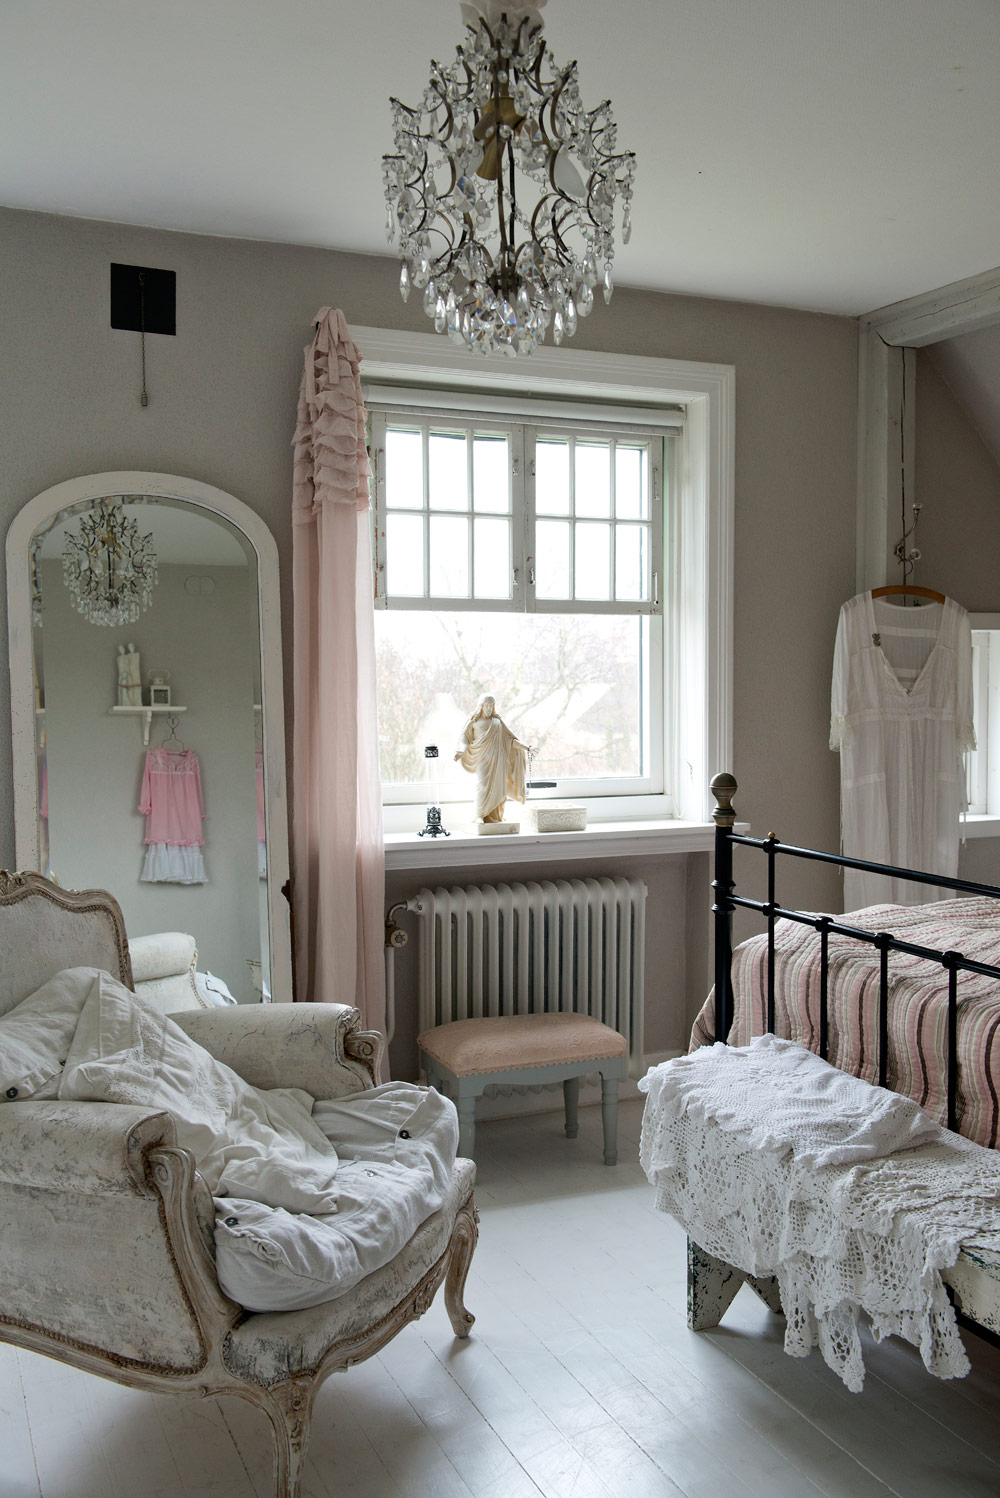 Gin design room shabby chic inspiration for Country cottage bedroom